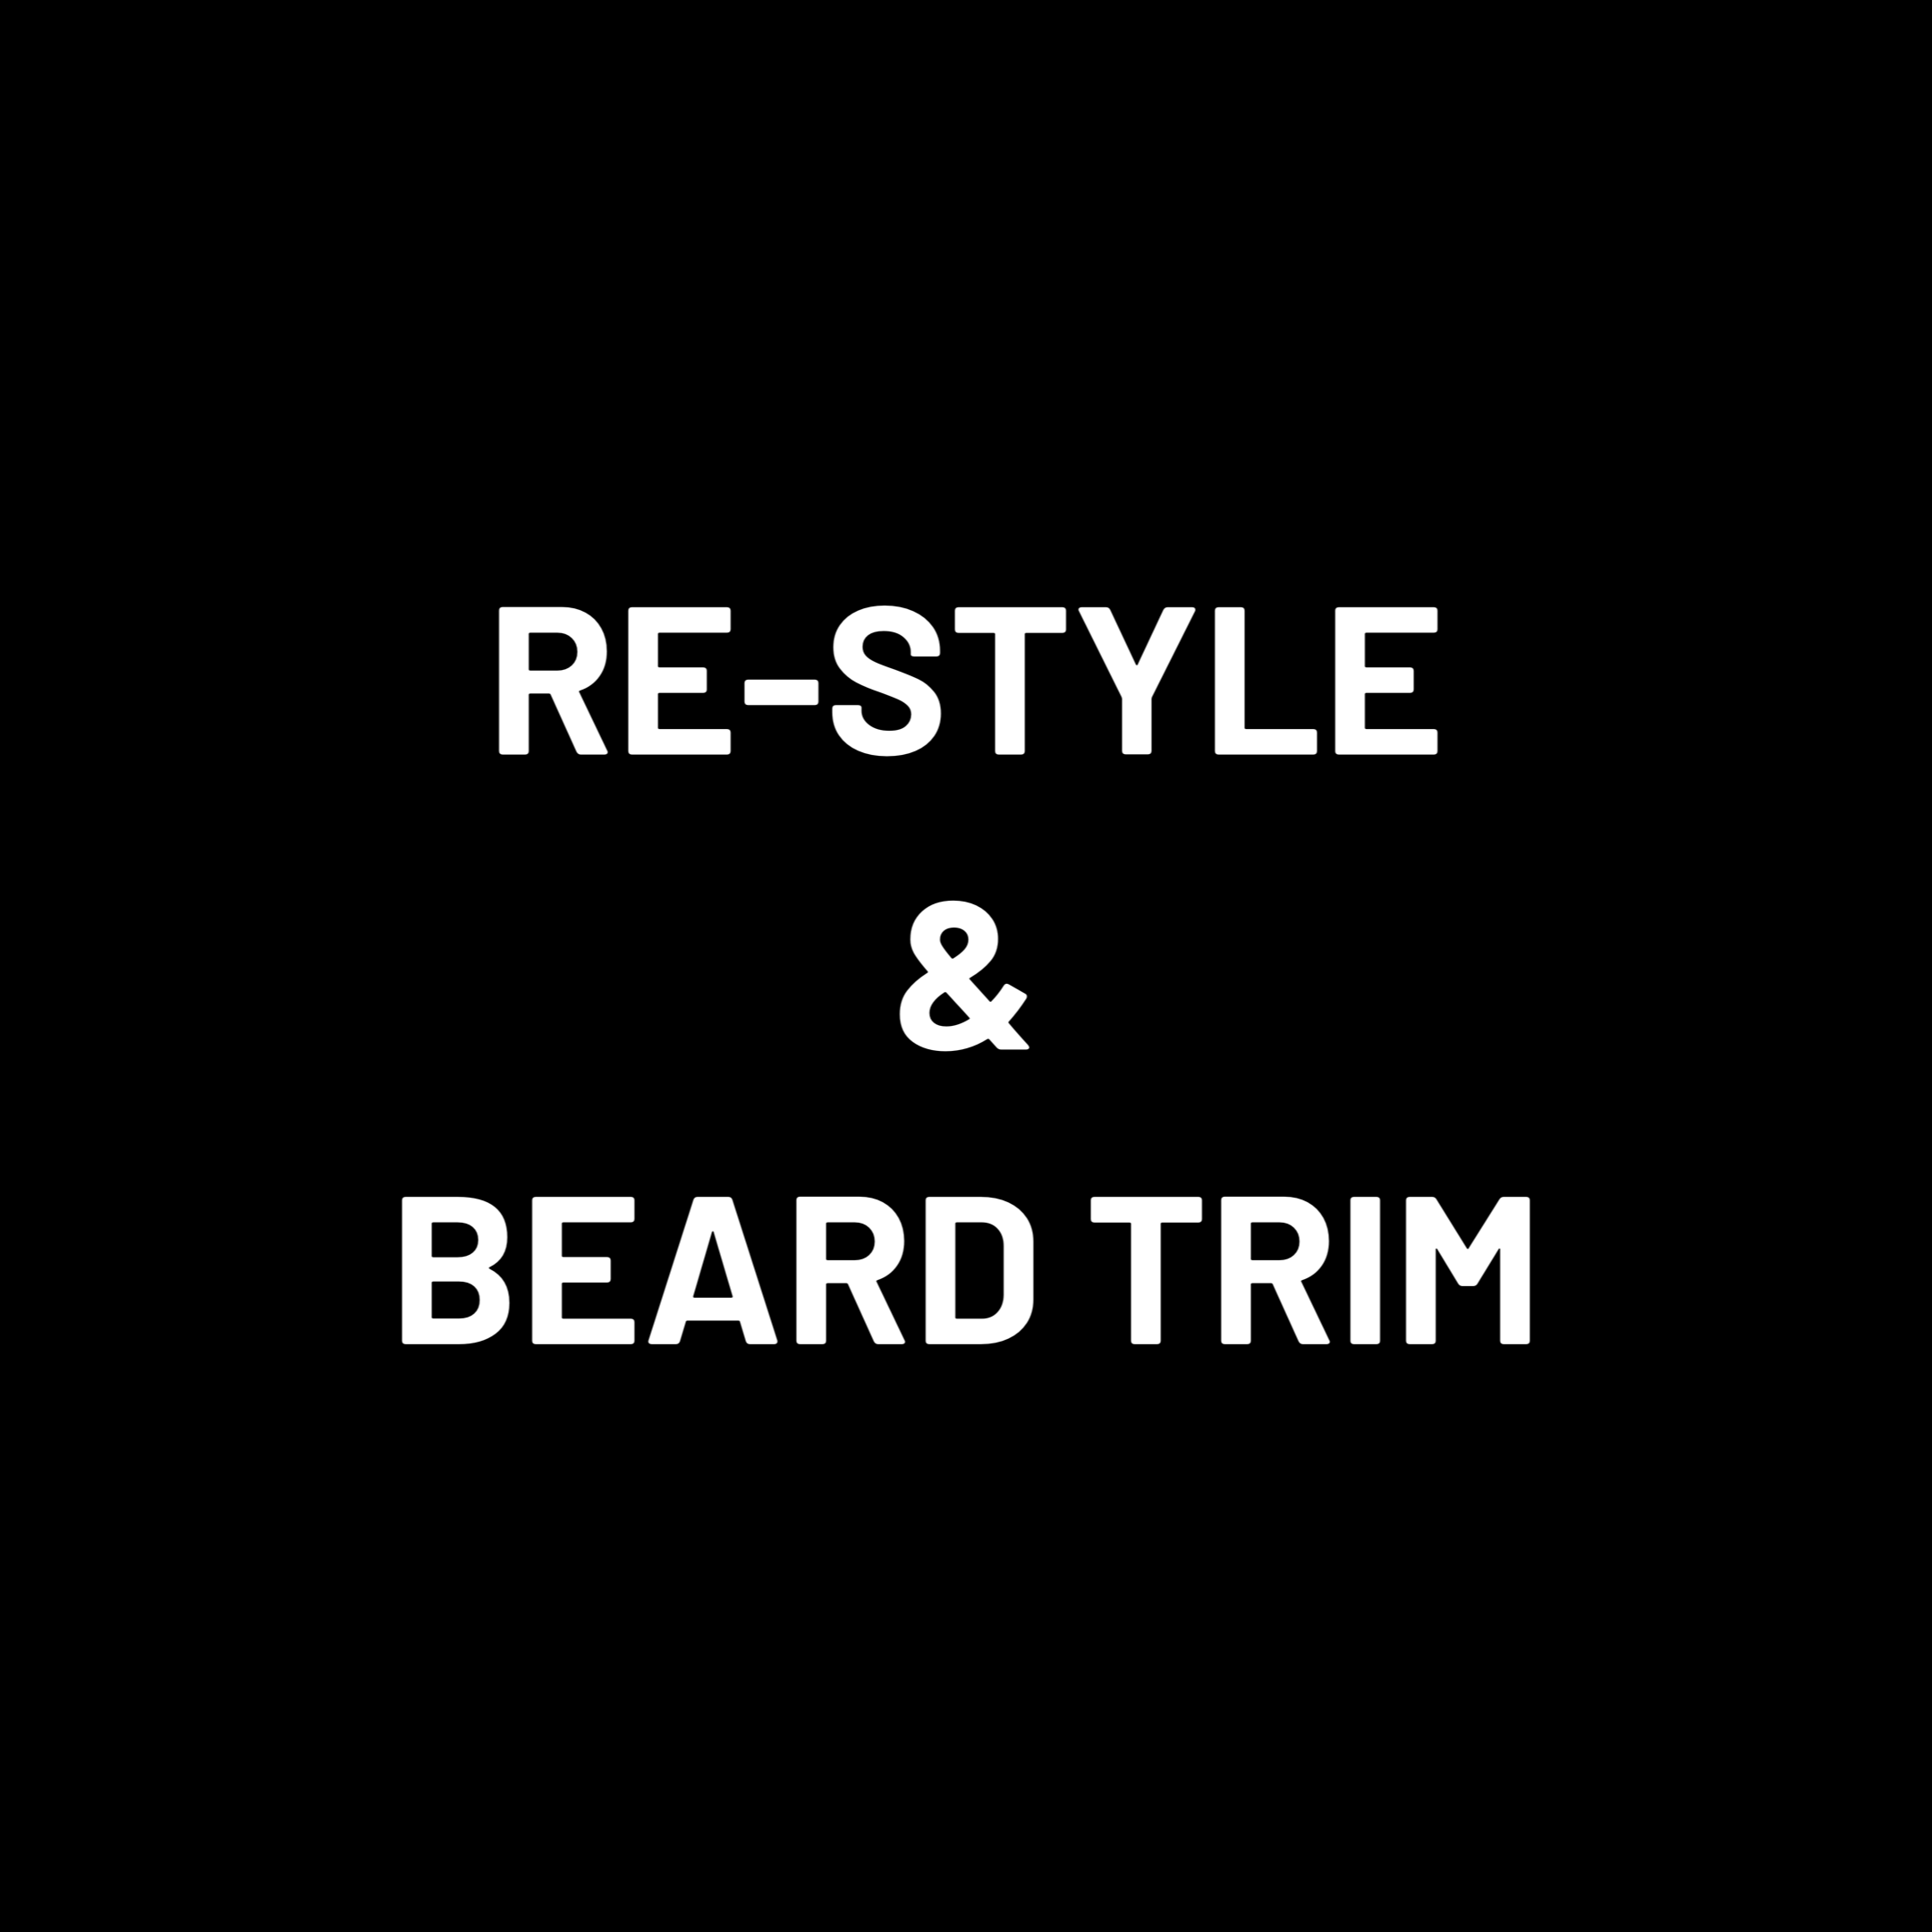 Re-style and Beard Trim